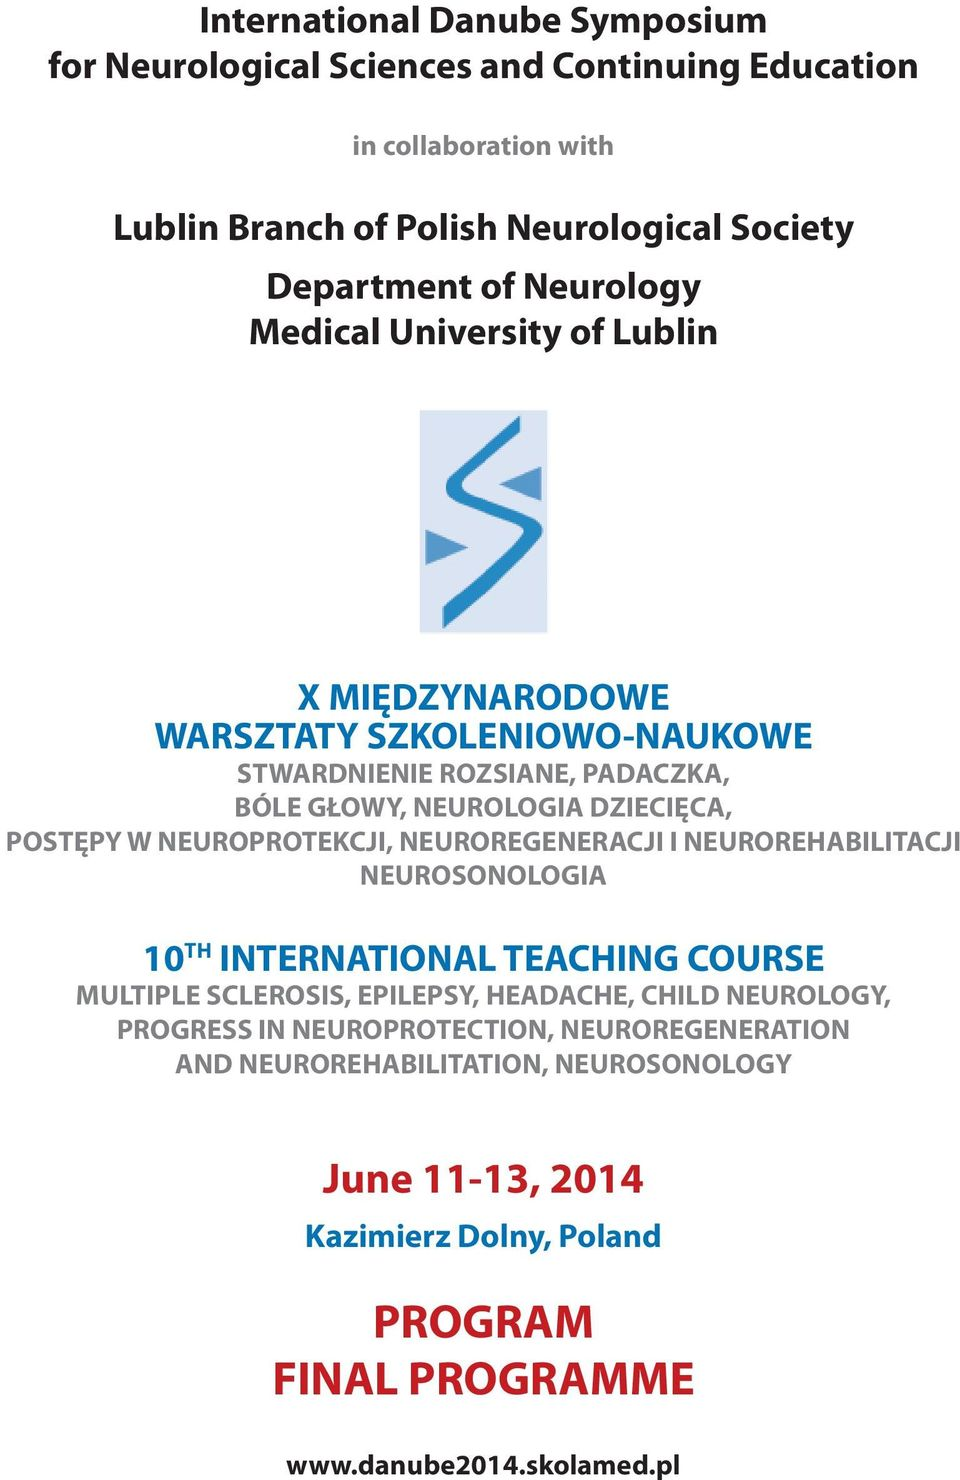 NEUROPROTEKCJI, NEUROREGENERACJI I NEUROREHABILITACJI NEUROSONOLOGIA 10 TH INTERNATIONAL TEACHING COURSE MULTIPLE SCLEROSIS, EPILEPSY, HEADACHE, CHILD NEUROLOGY,